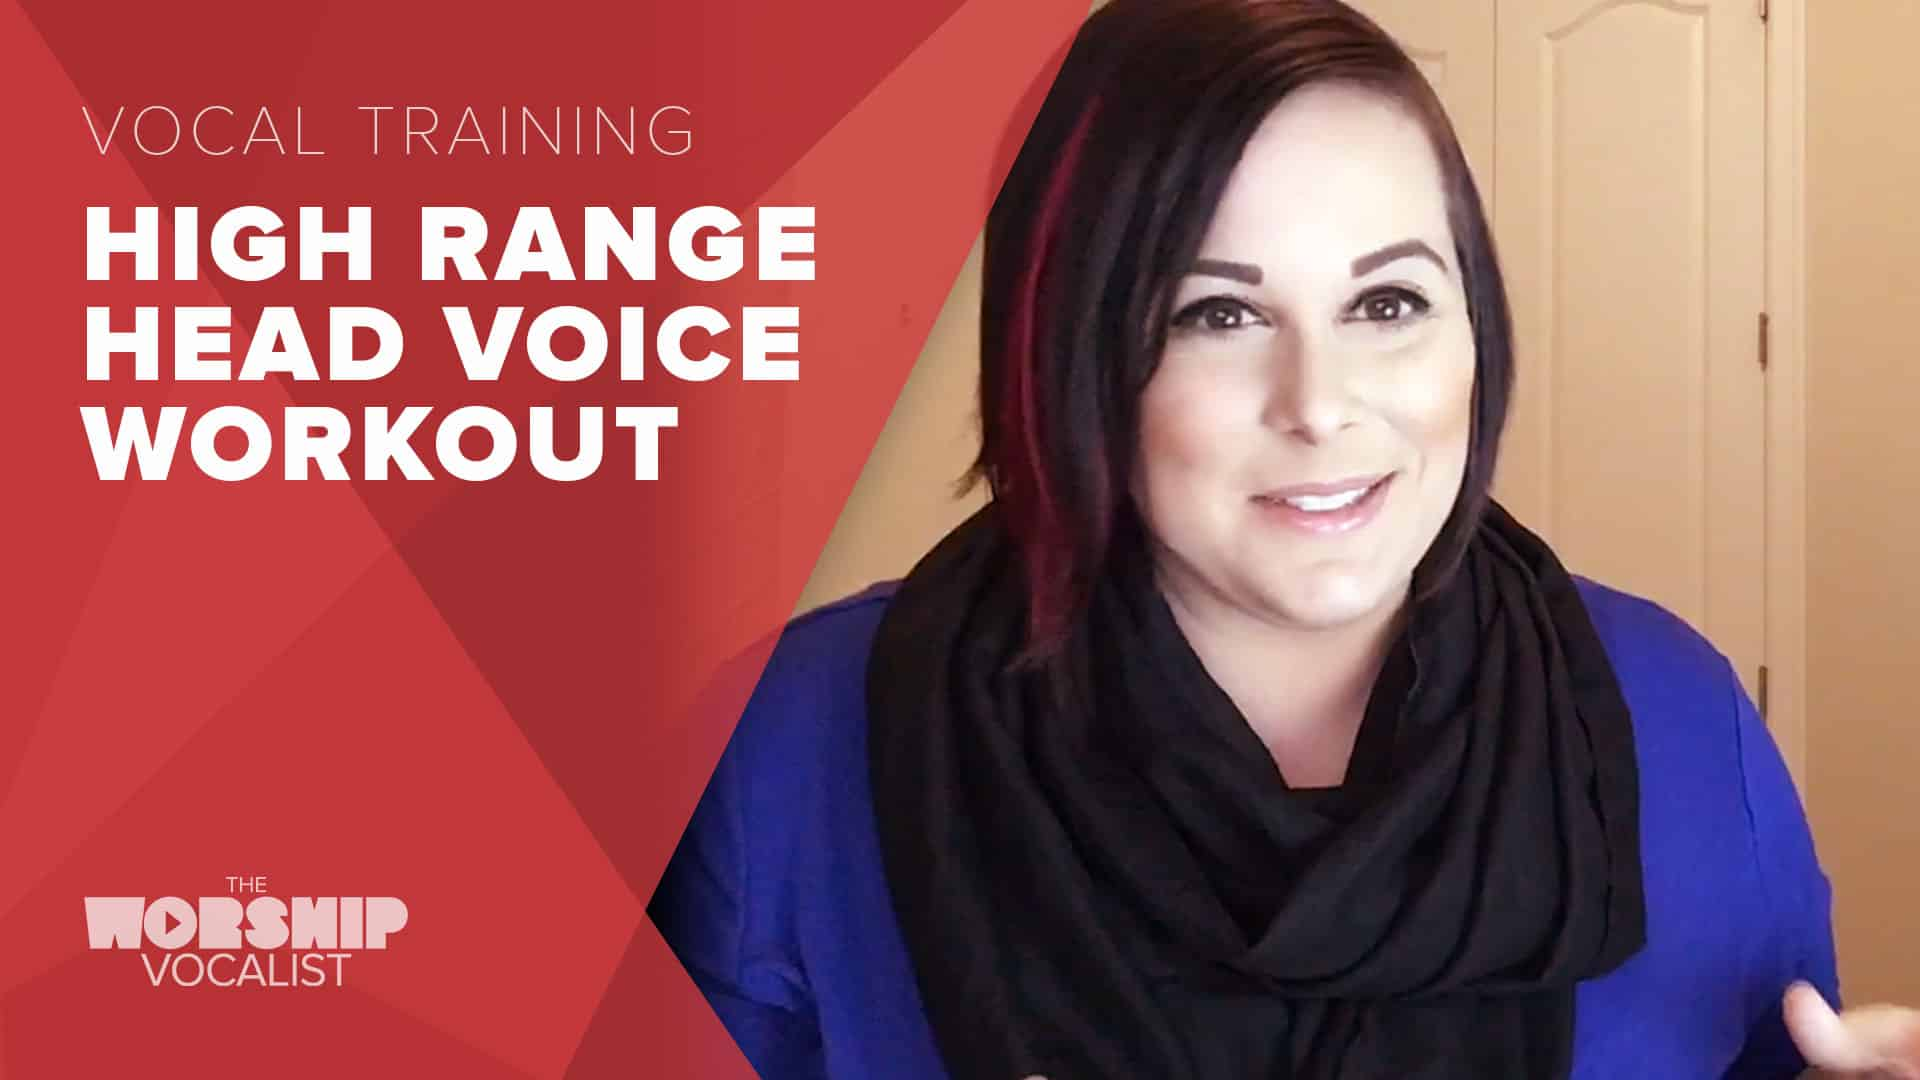 video workout for exercising high vocal range and head voice